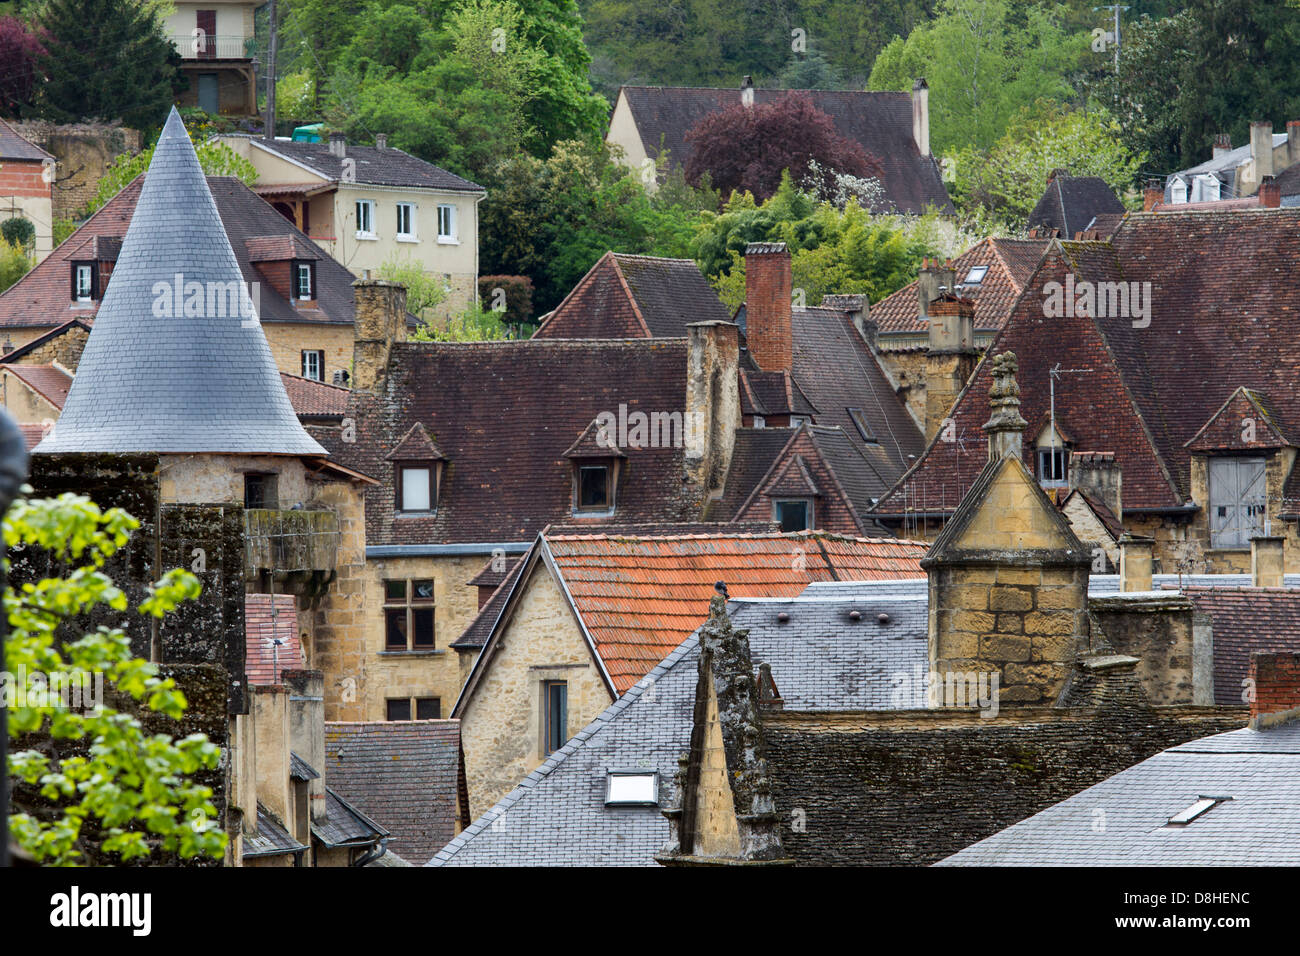 Jumble of tile rooftops emerges from medieval sandstone houses in charming Sarlat, Dordogne region of France - Stock Image